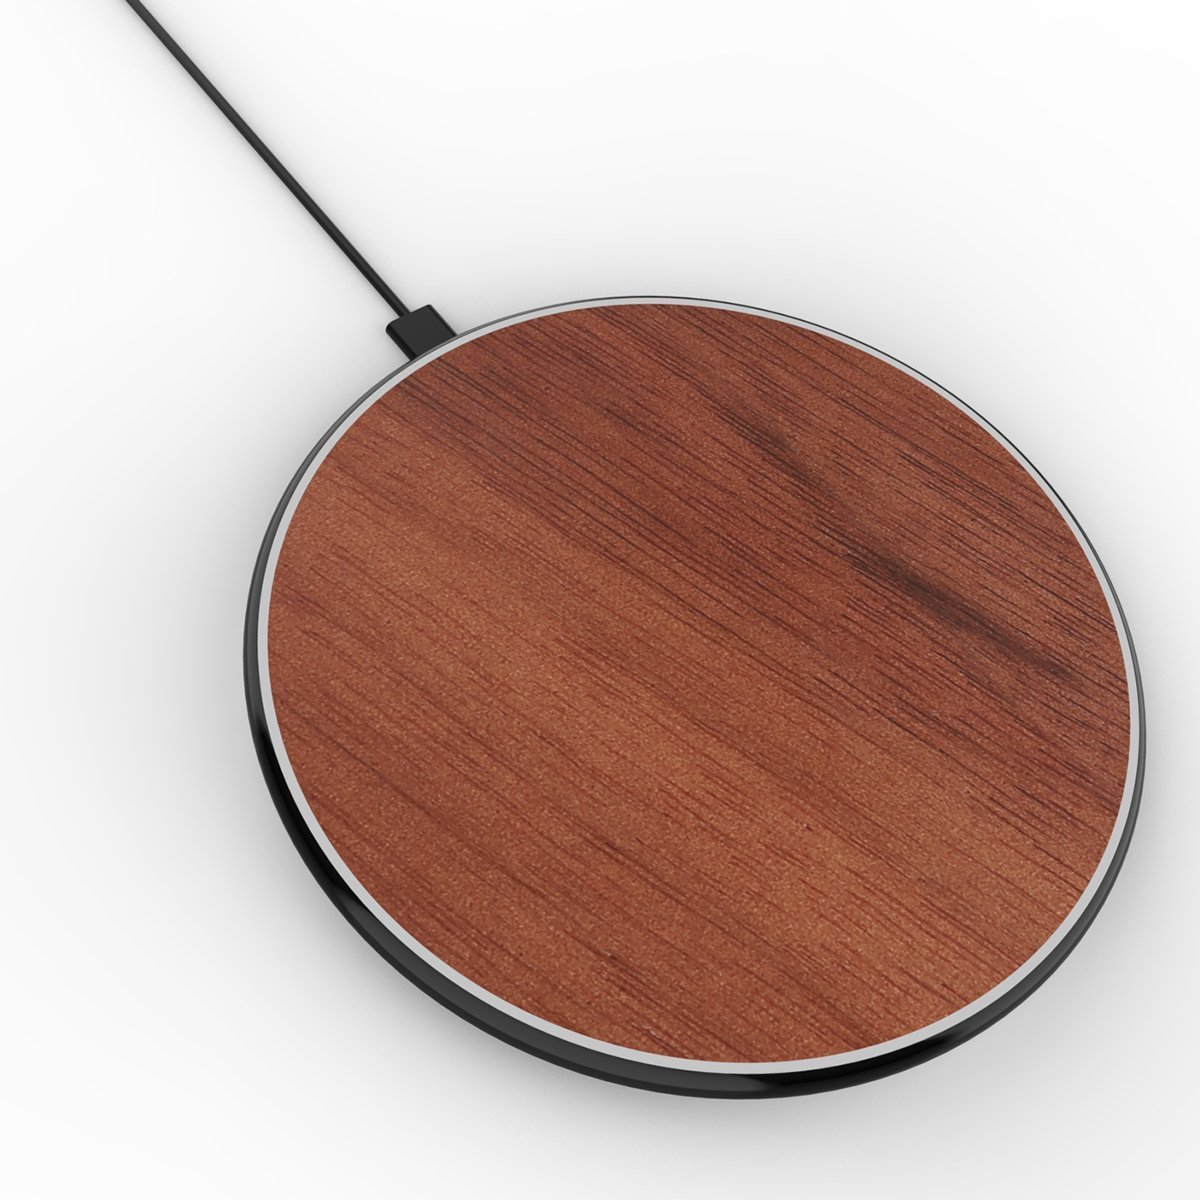 Fast Wireless Chargers, HAISSKY Ultra-Thin Wood Qi Wireless Charging Pad for iPhone 8/ 8 Plus, Samsung Galaxy S6 Edge S6 Edge Plus S7 Edge Note 8 Note 5 Nokia 920 950/xl and All Qi-Enabled Devices (Brown)